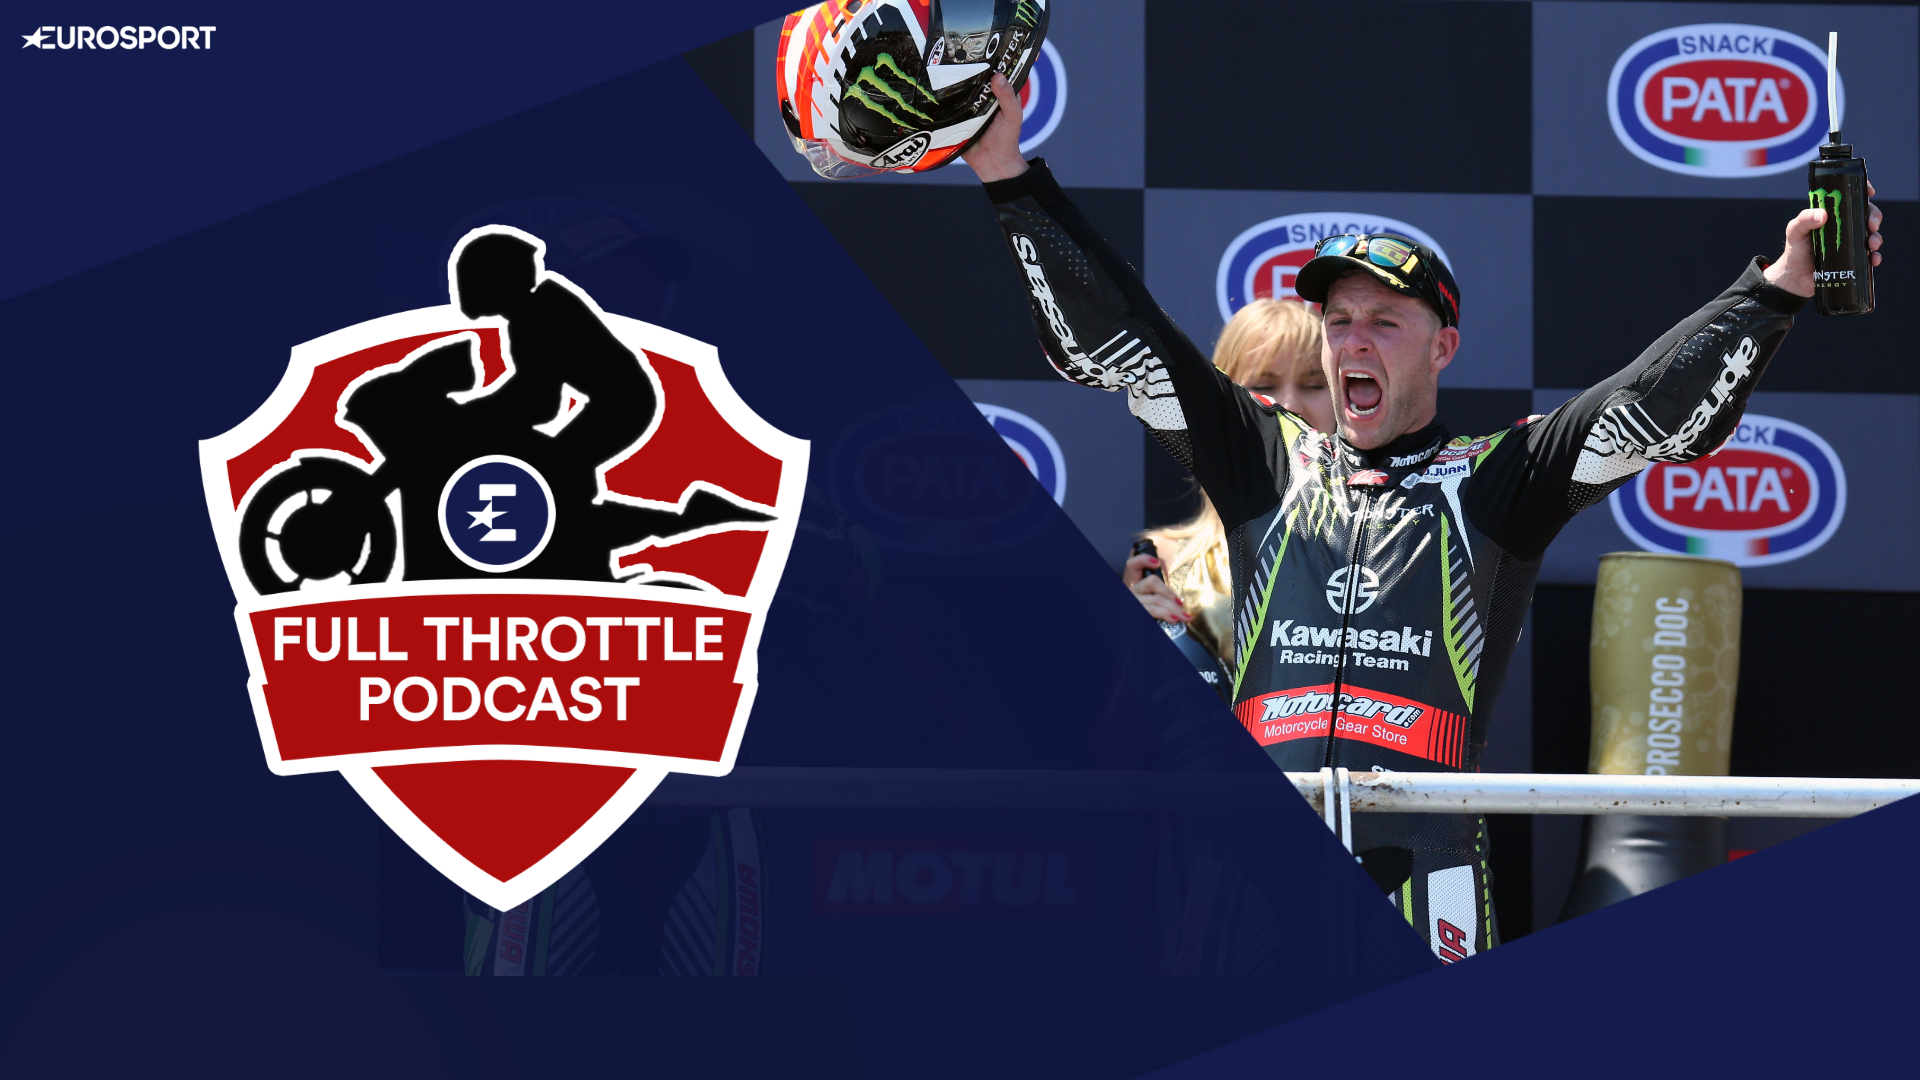 S2, E22: How has Rea turned the title tide? Can he hold off Bautista?